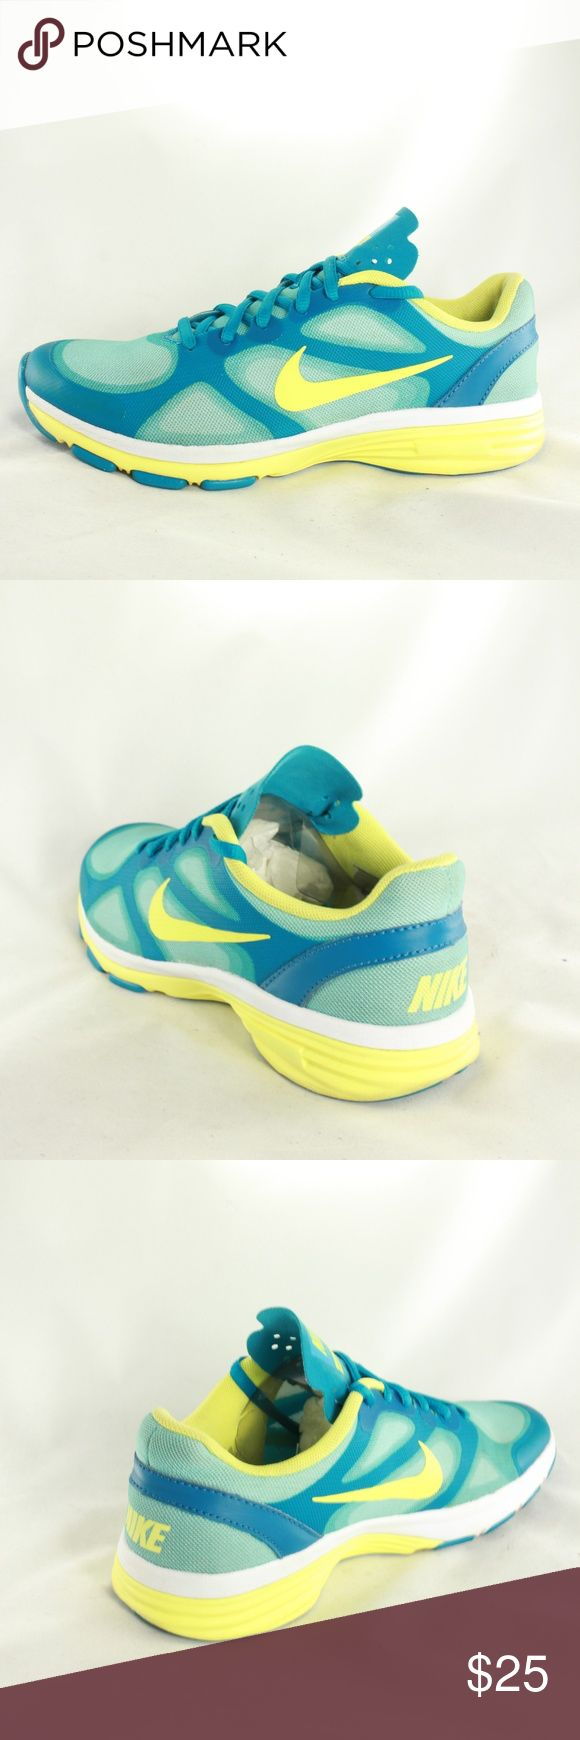 NIKE Dual Fusion TR Training Blue Yellow Sneakers Really great condition all around. Upper is 10/10 condition. Sole is 9.10 with minimal wear. Midsole and insole are mint with no issues.  Size 5.5 Nike Shoes Sneakers